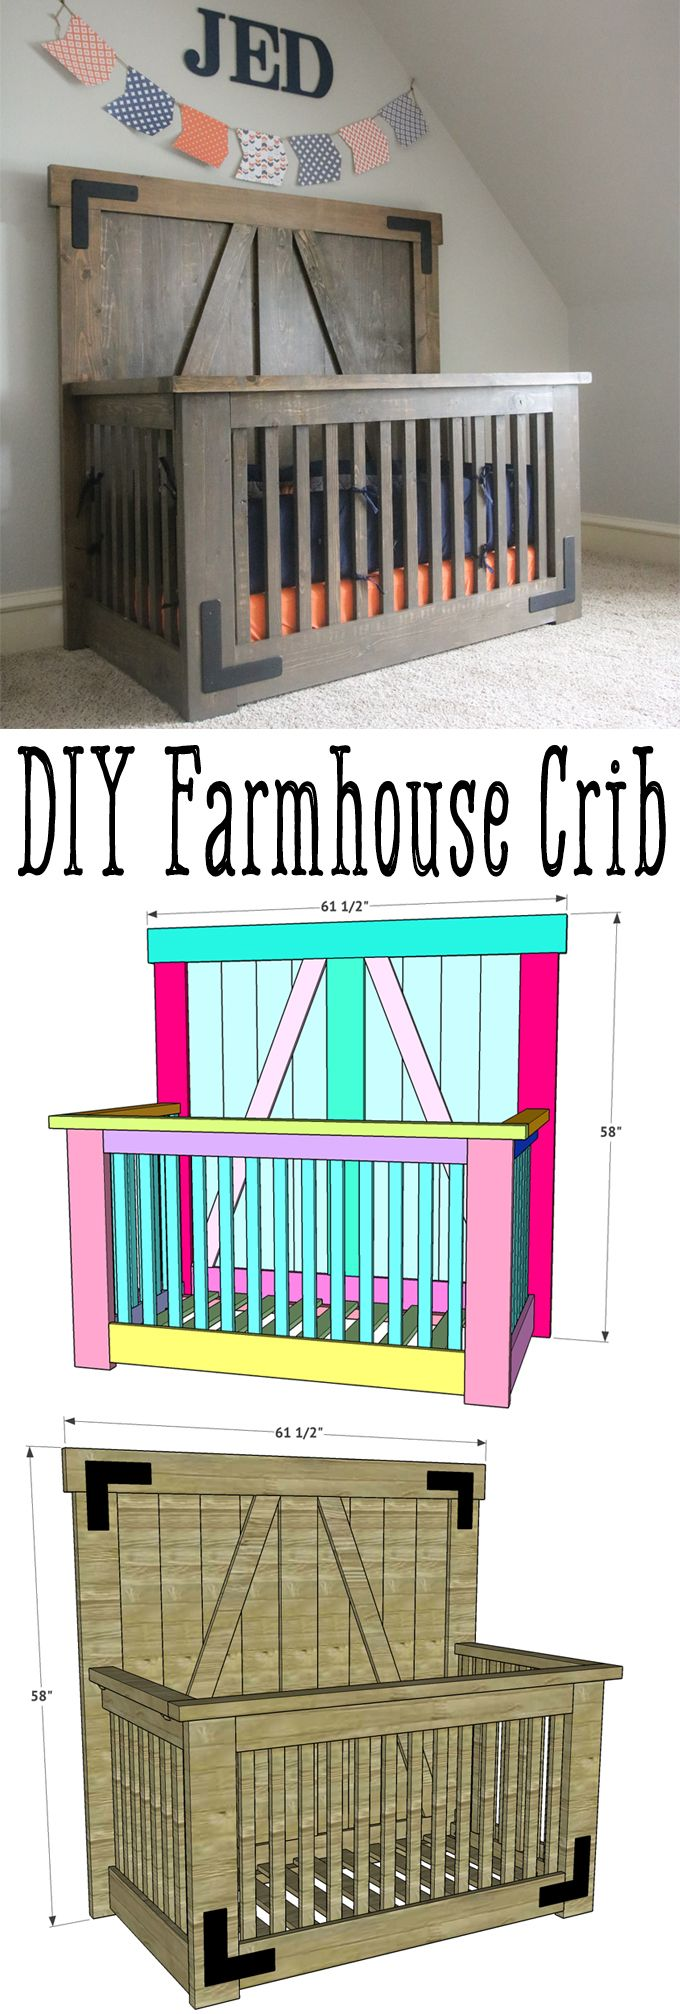 Used crib for sale atlanta - Love This Diy Farmhouse Crib By Shanty2chic Free Plans And Tutorial On How To Build